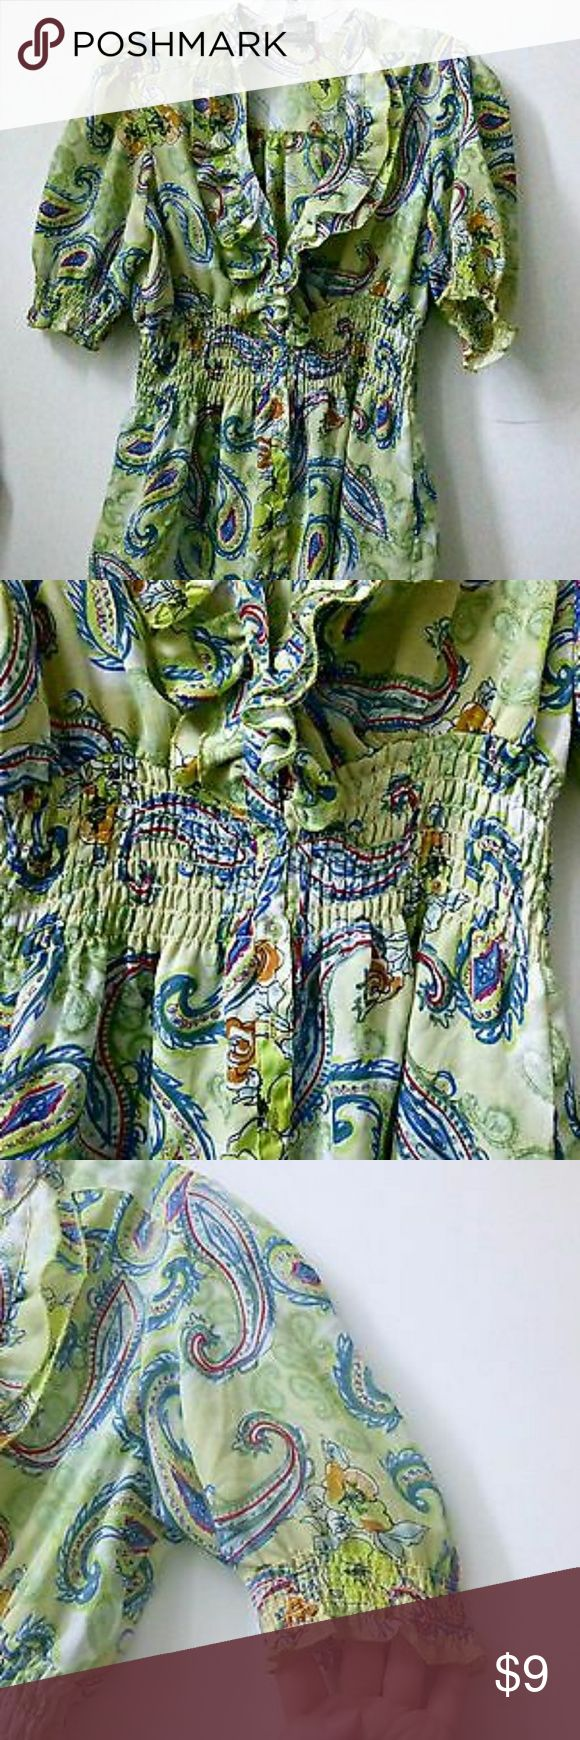 Esmeralda Fashions Size M Top Esmeralda Fashions Size M Green Short Sleeve Top Blouse Elastic Waist Ruffles  Material:100% polyester  Length : 26'' From armpit to armpit : 18.5'' Sleeve length : 12.5'' Esmeralda Fashions Tops